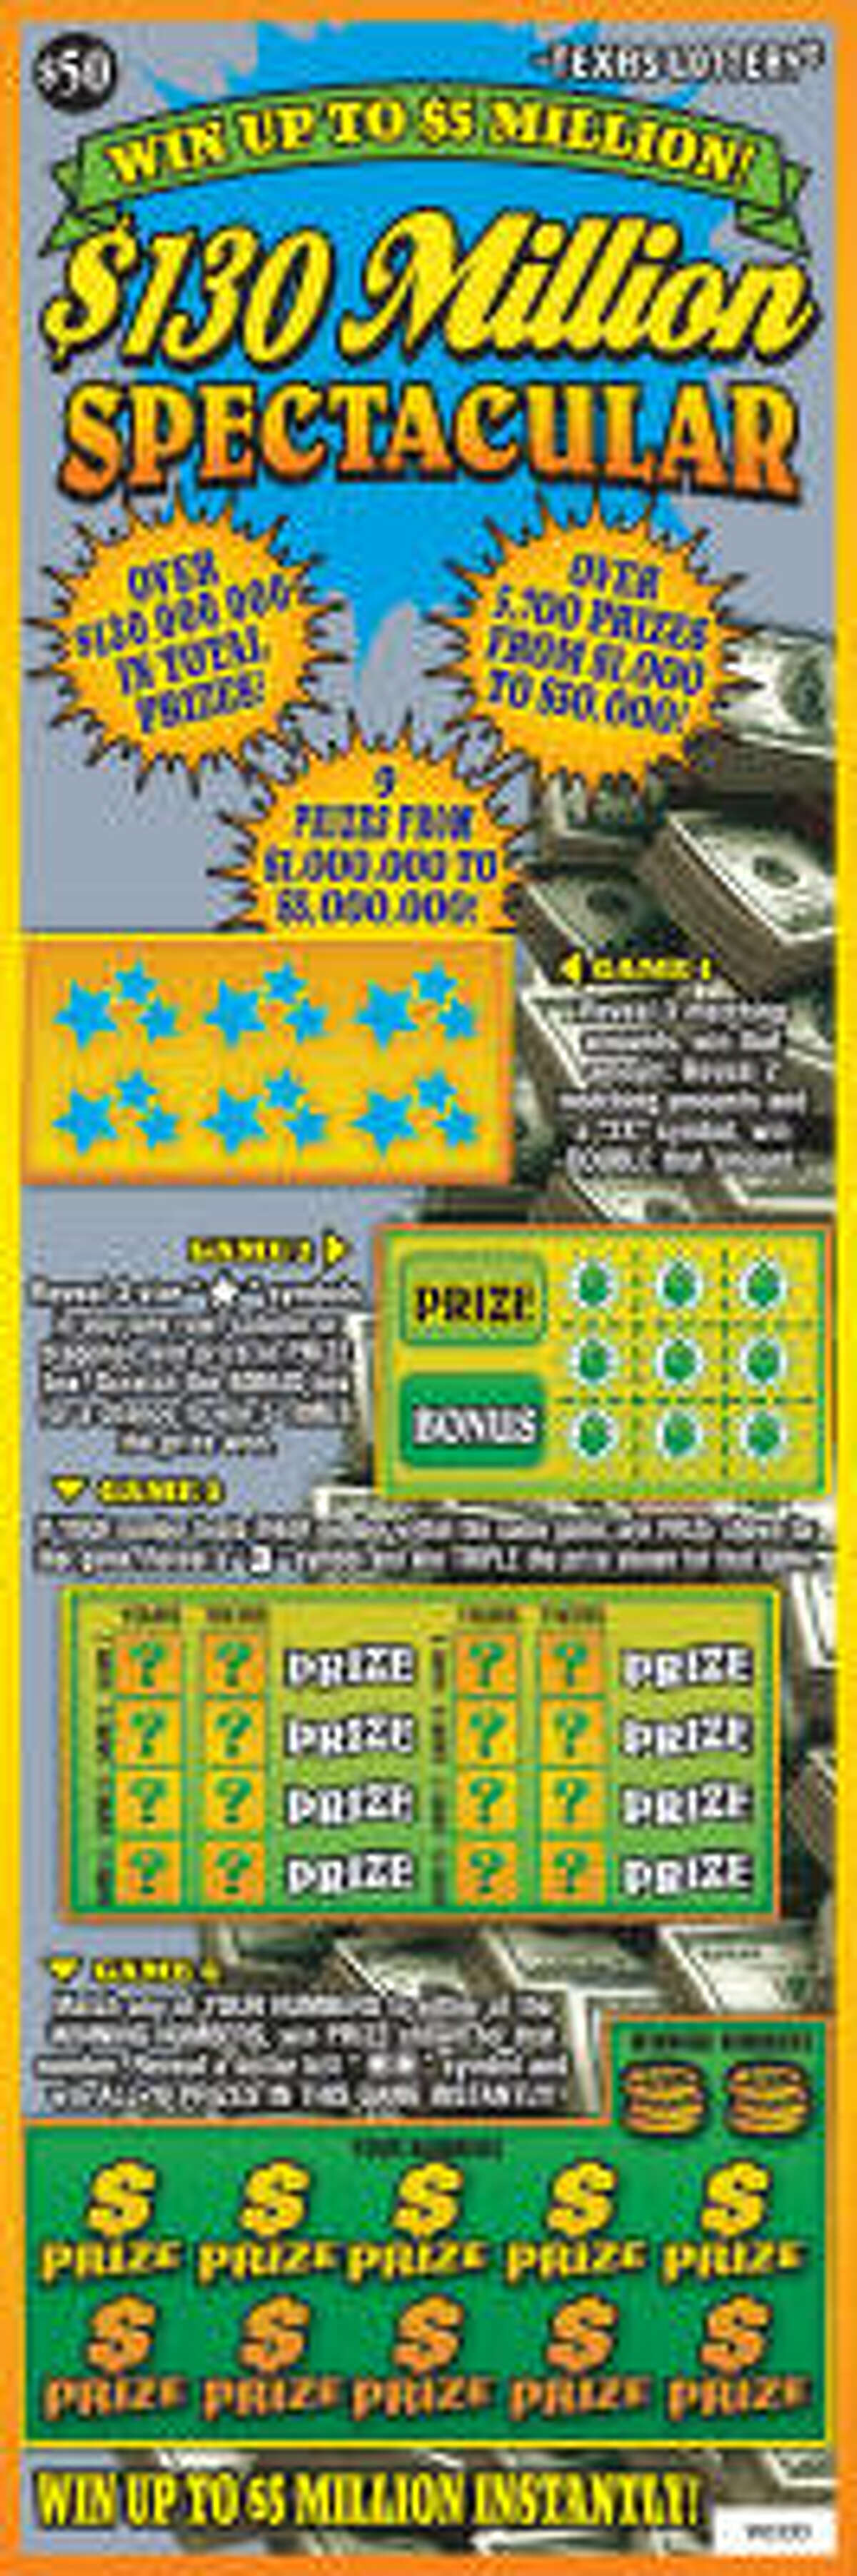 Texas Lottery players can win big, but must belly up $50 to play this new scratch-off game.